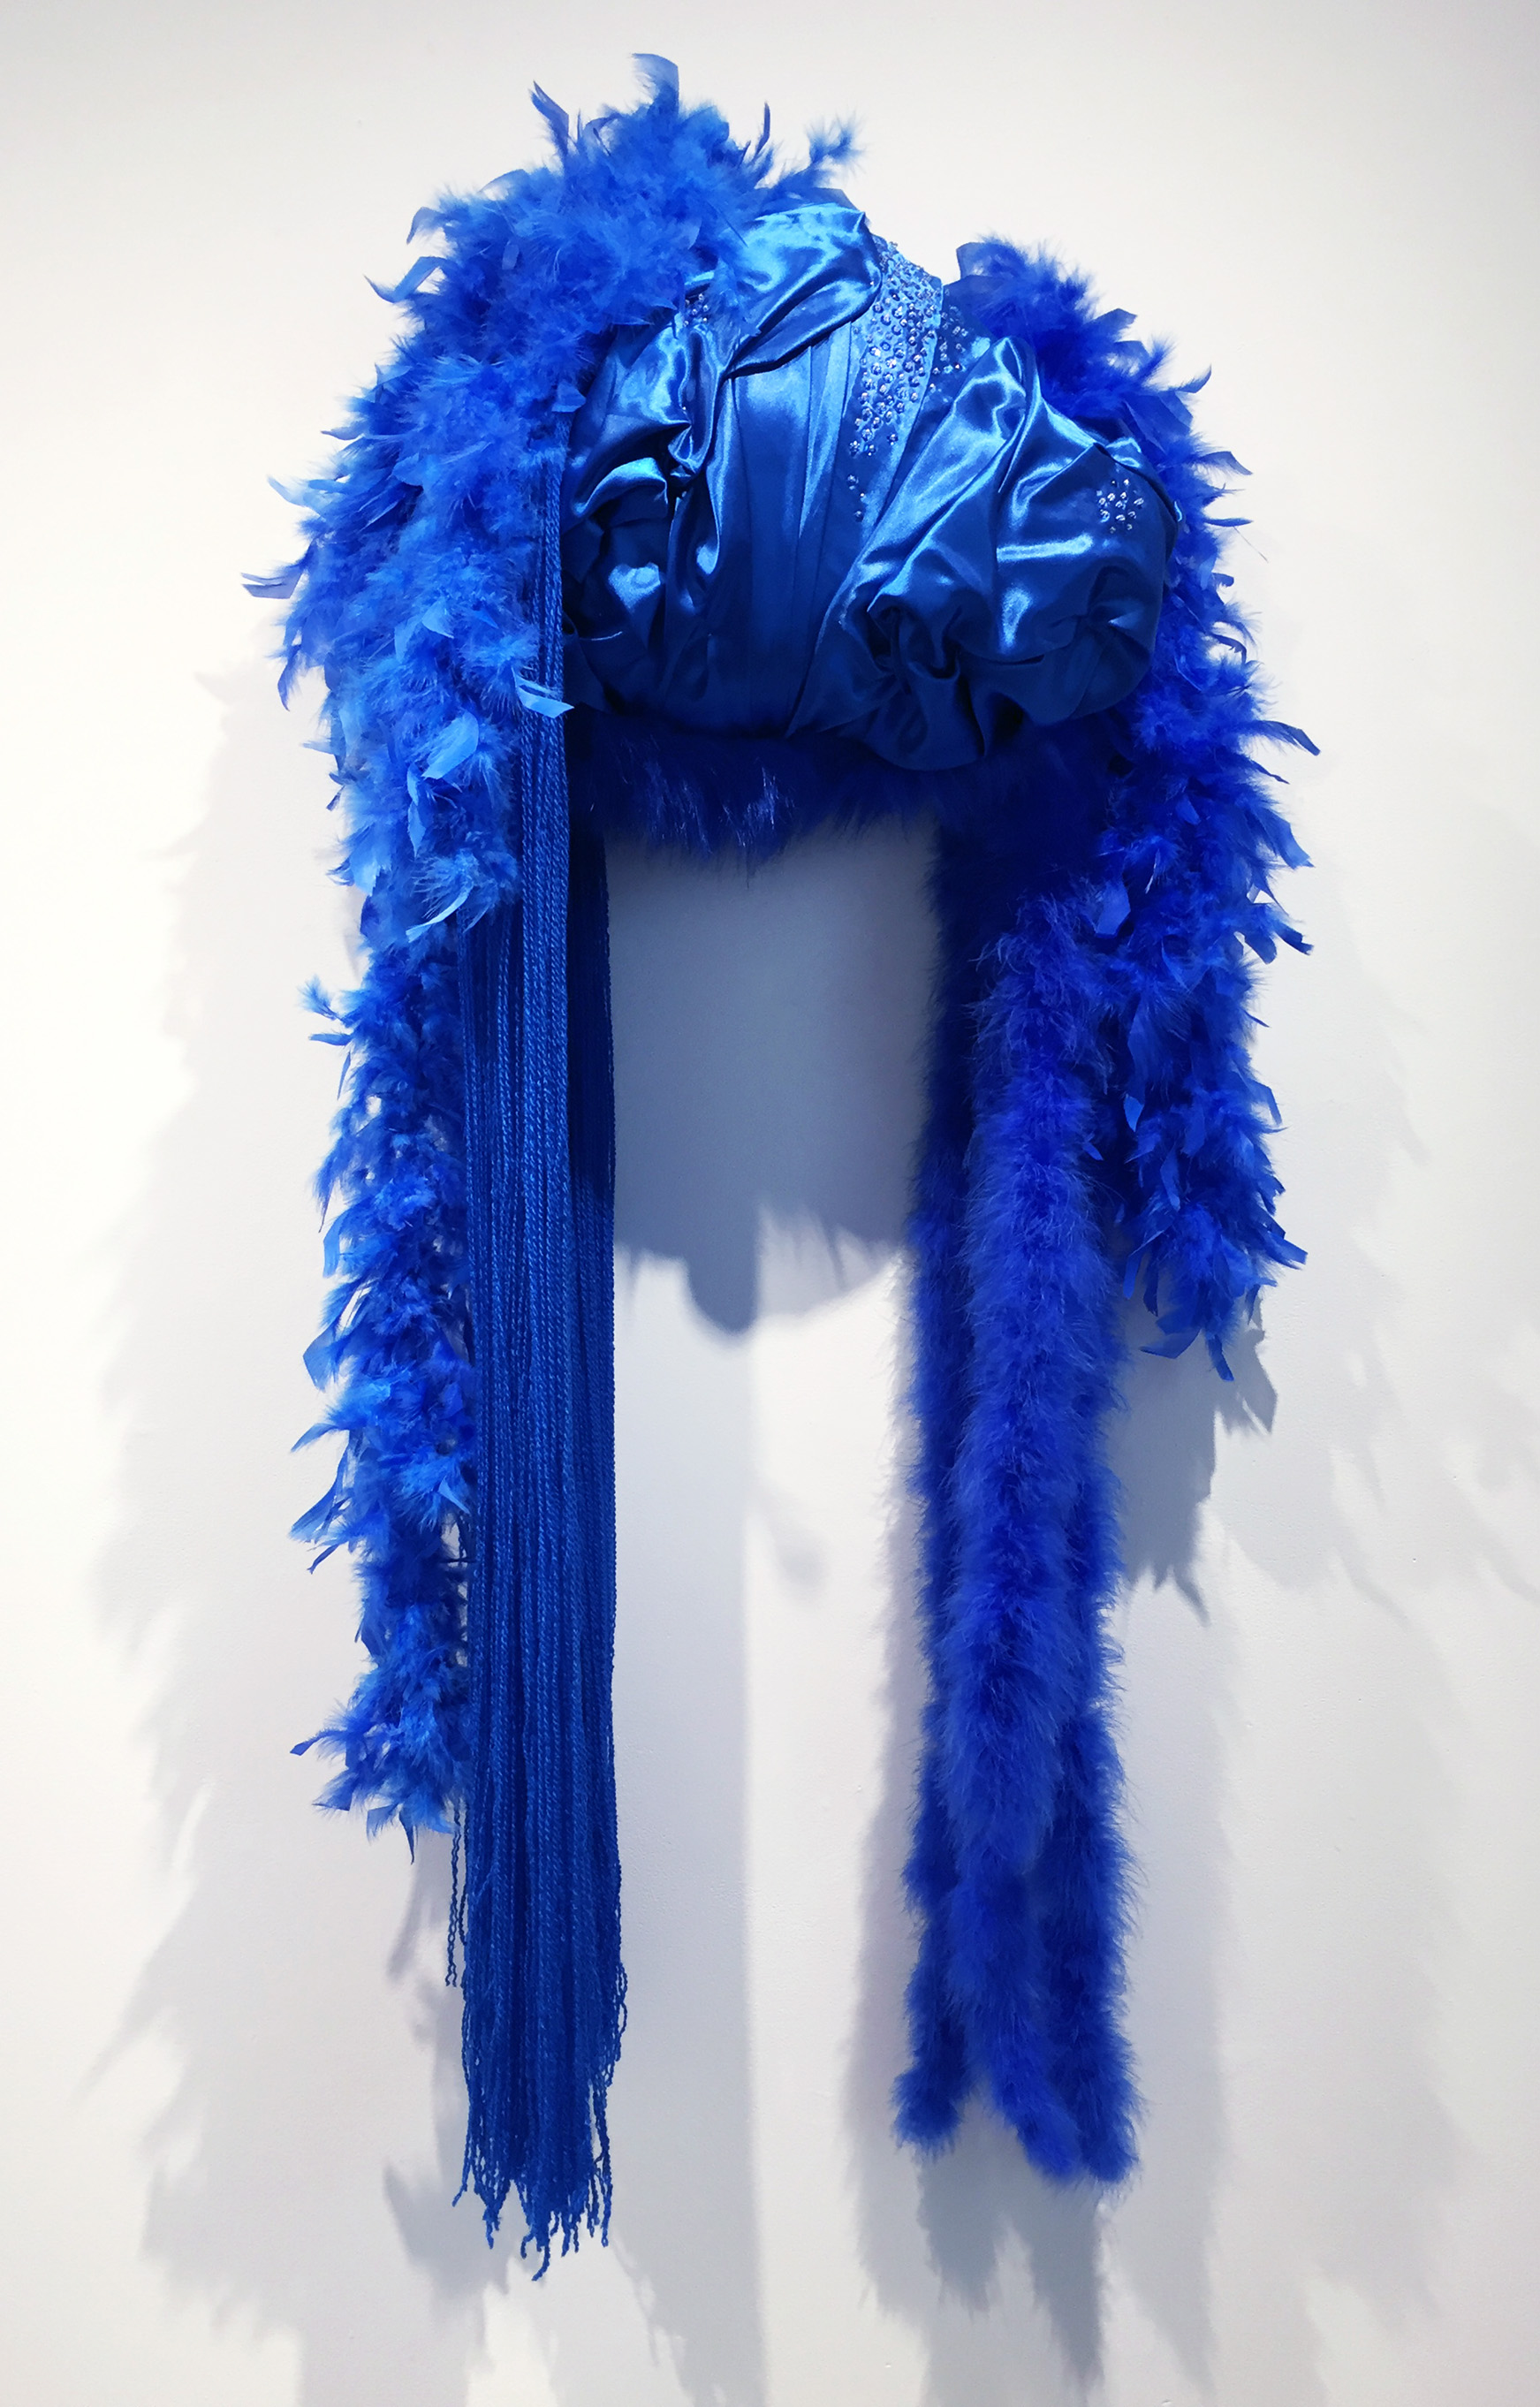 Gwenevere  , 2019   Polystyrene foam, fabrics, feathers, glass beads, sequins and dressmaker pins  56 x 24 x 11 inches